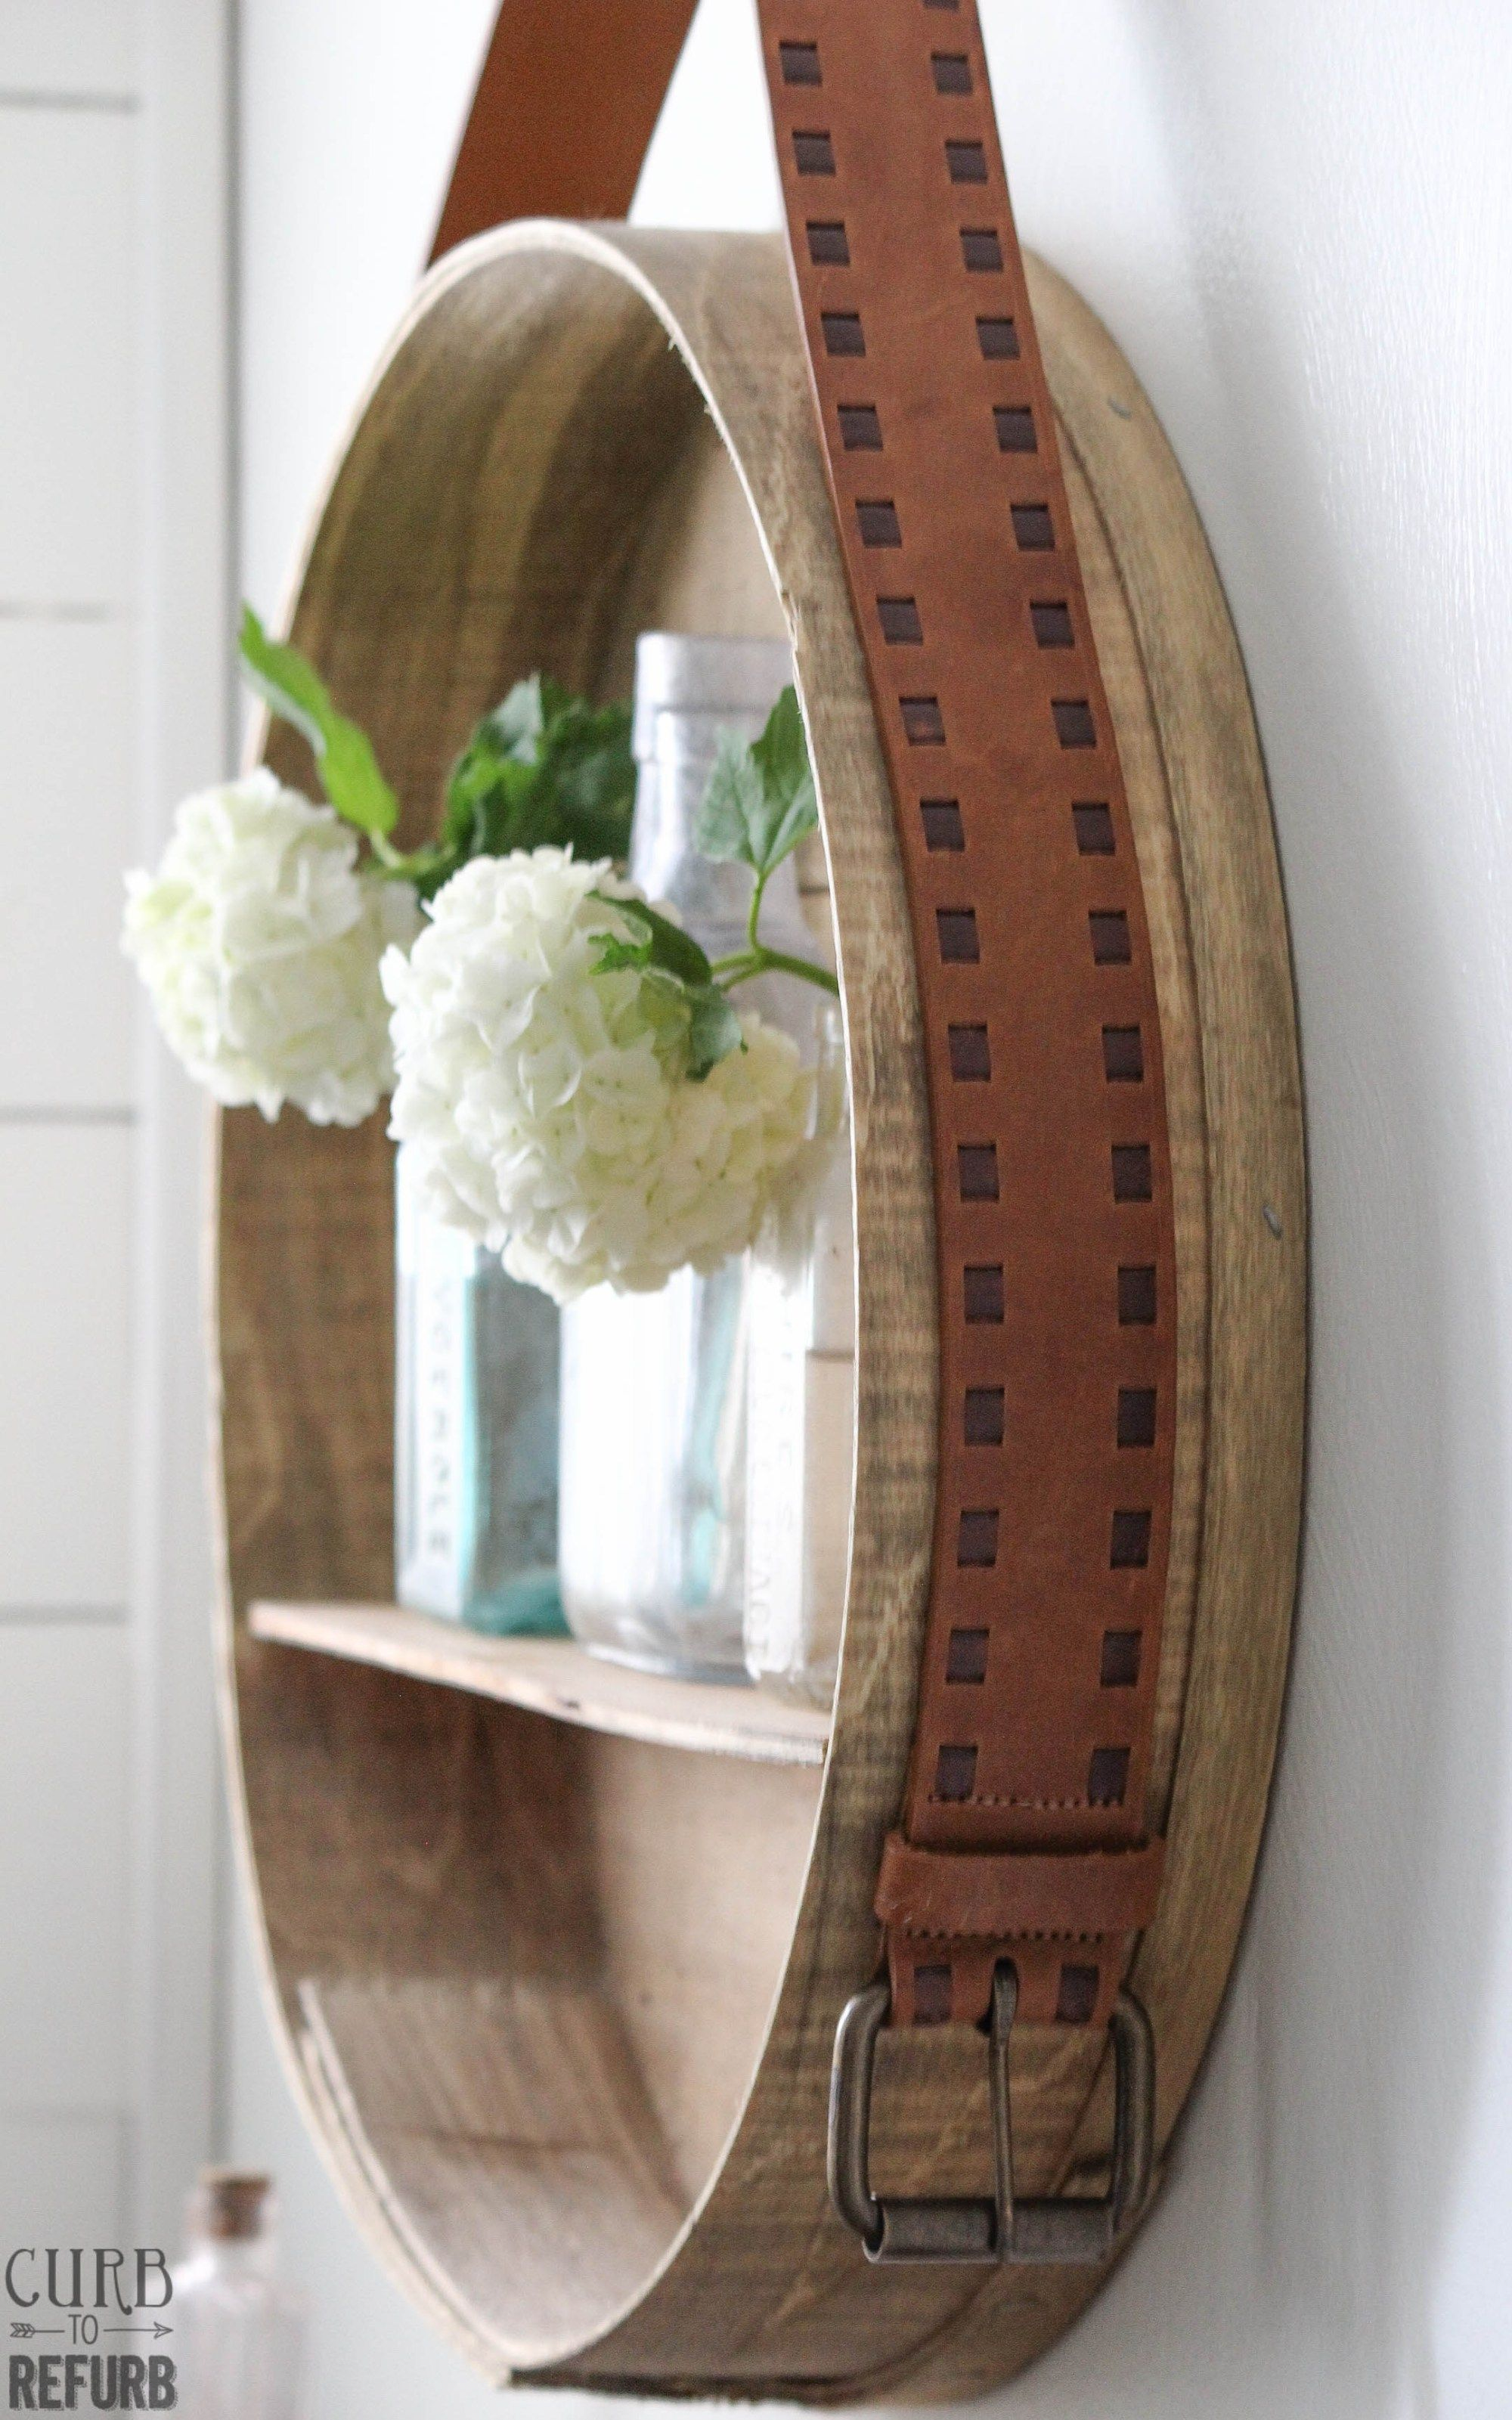 How to turn cheese box into hanging shelf